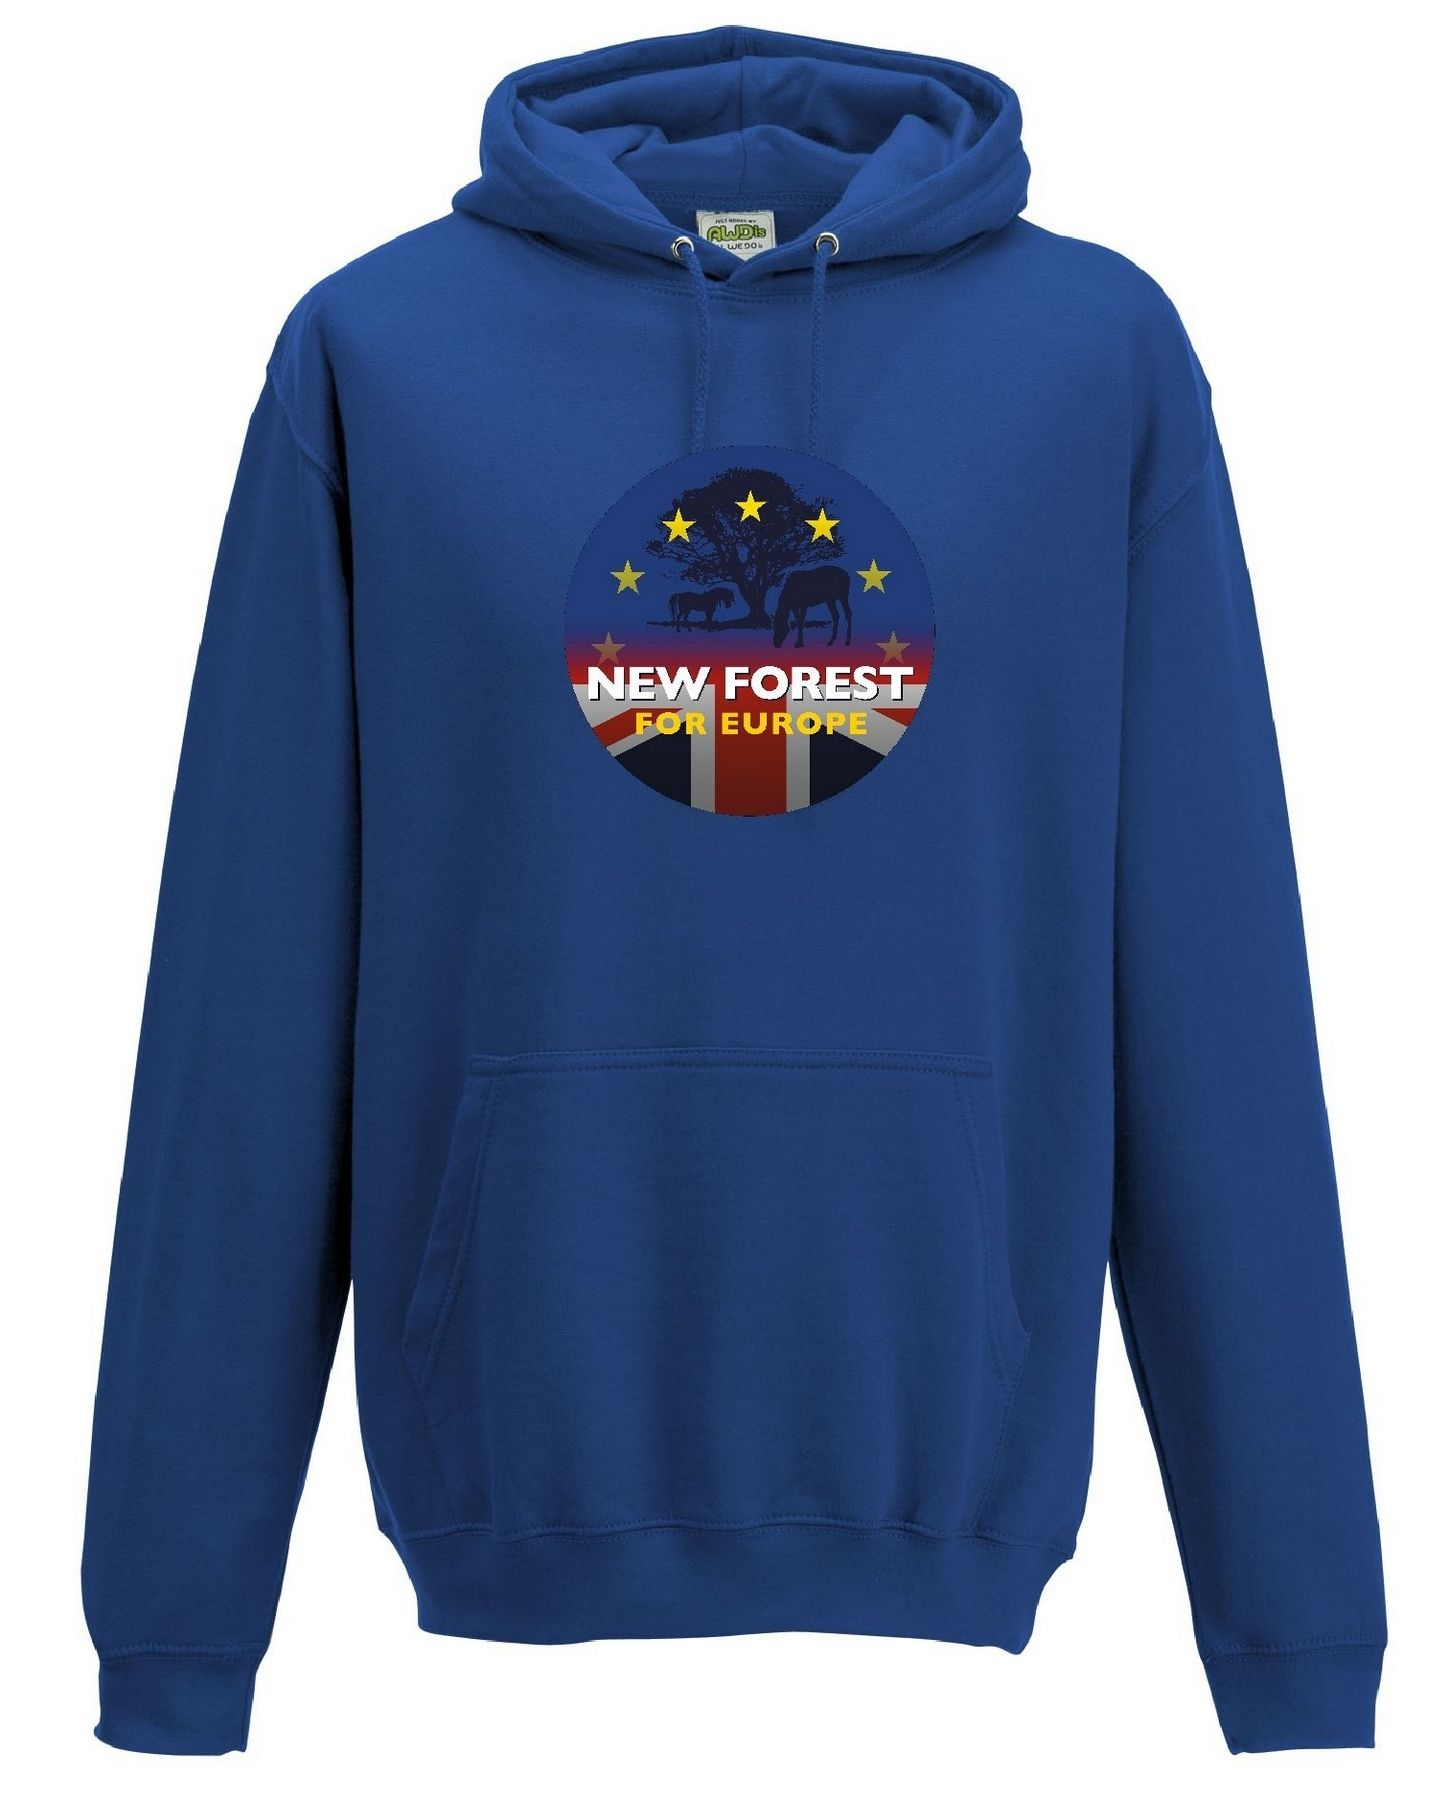 New Forest for Europe – Hoodie (Unisex)